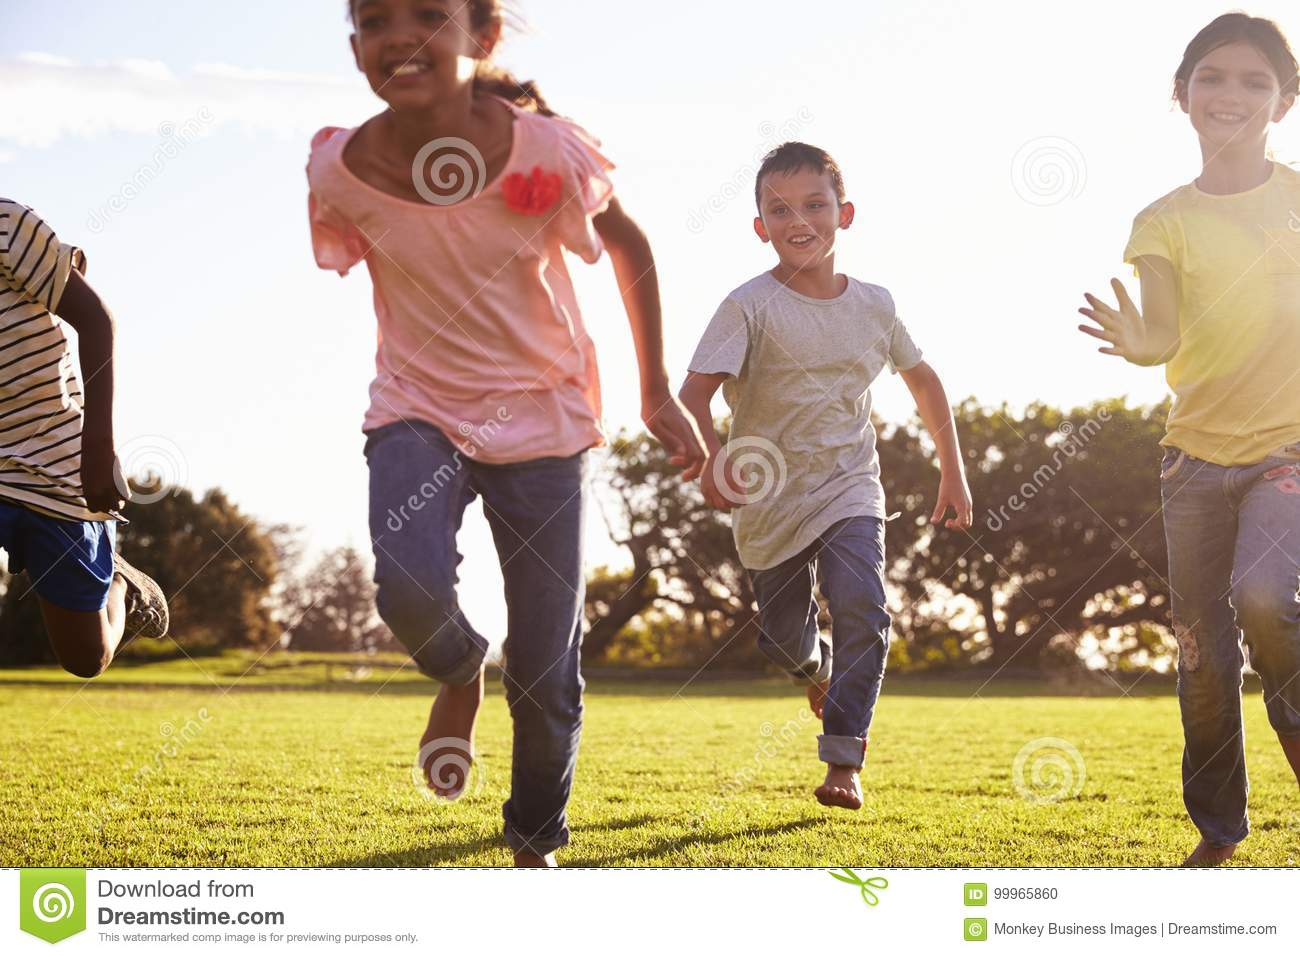 Three happy children running barefoot in a field in Summer